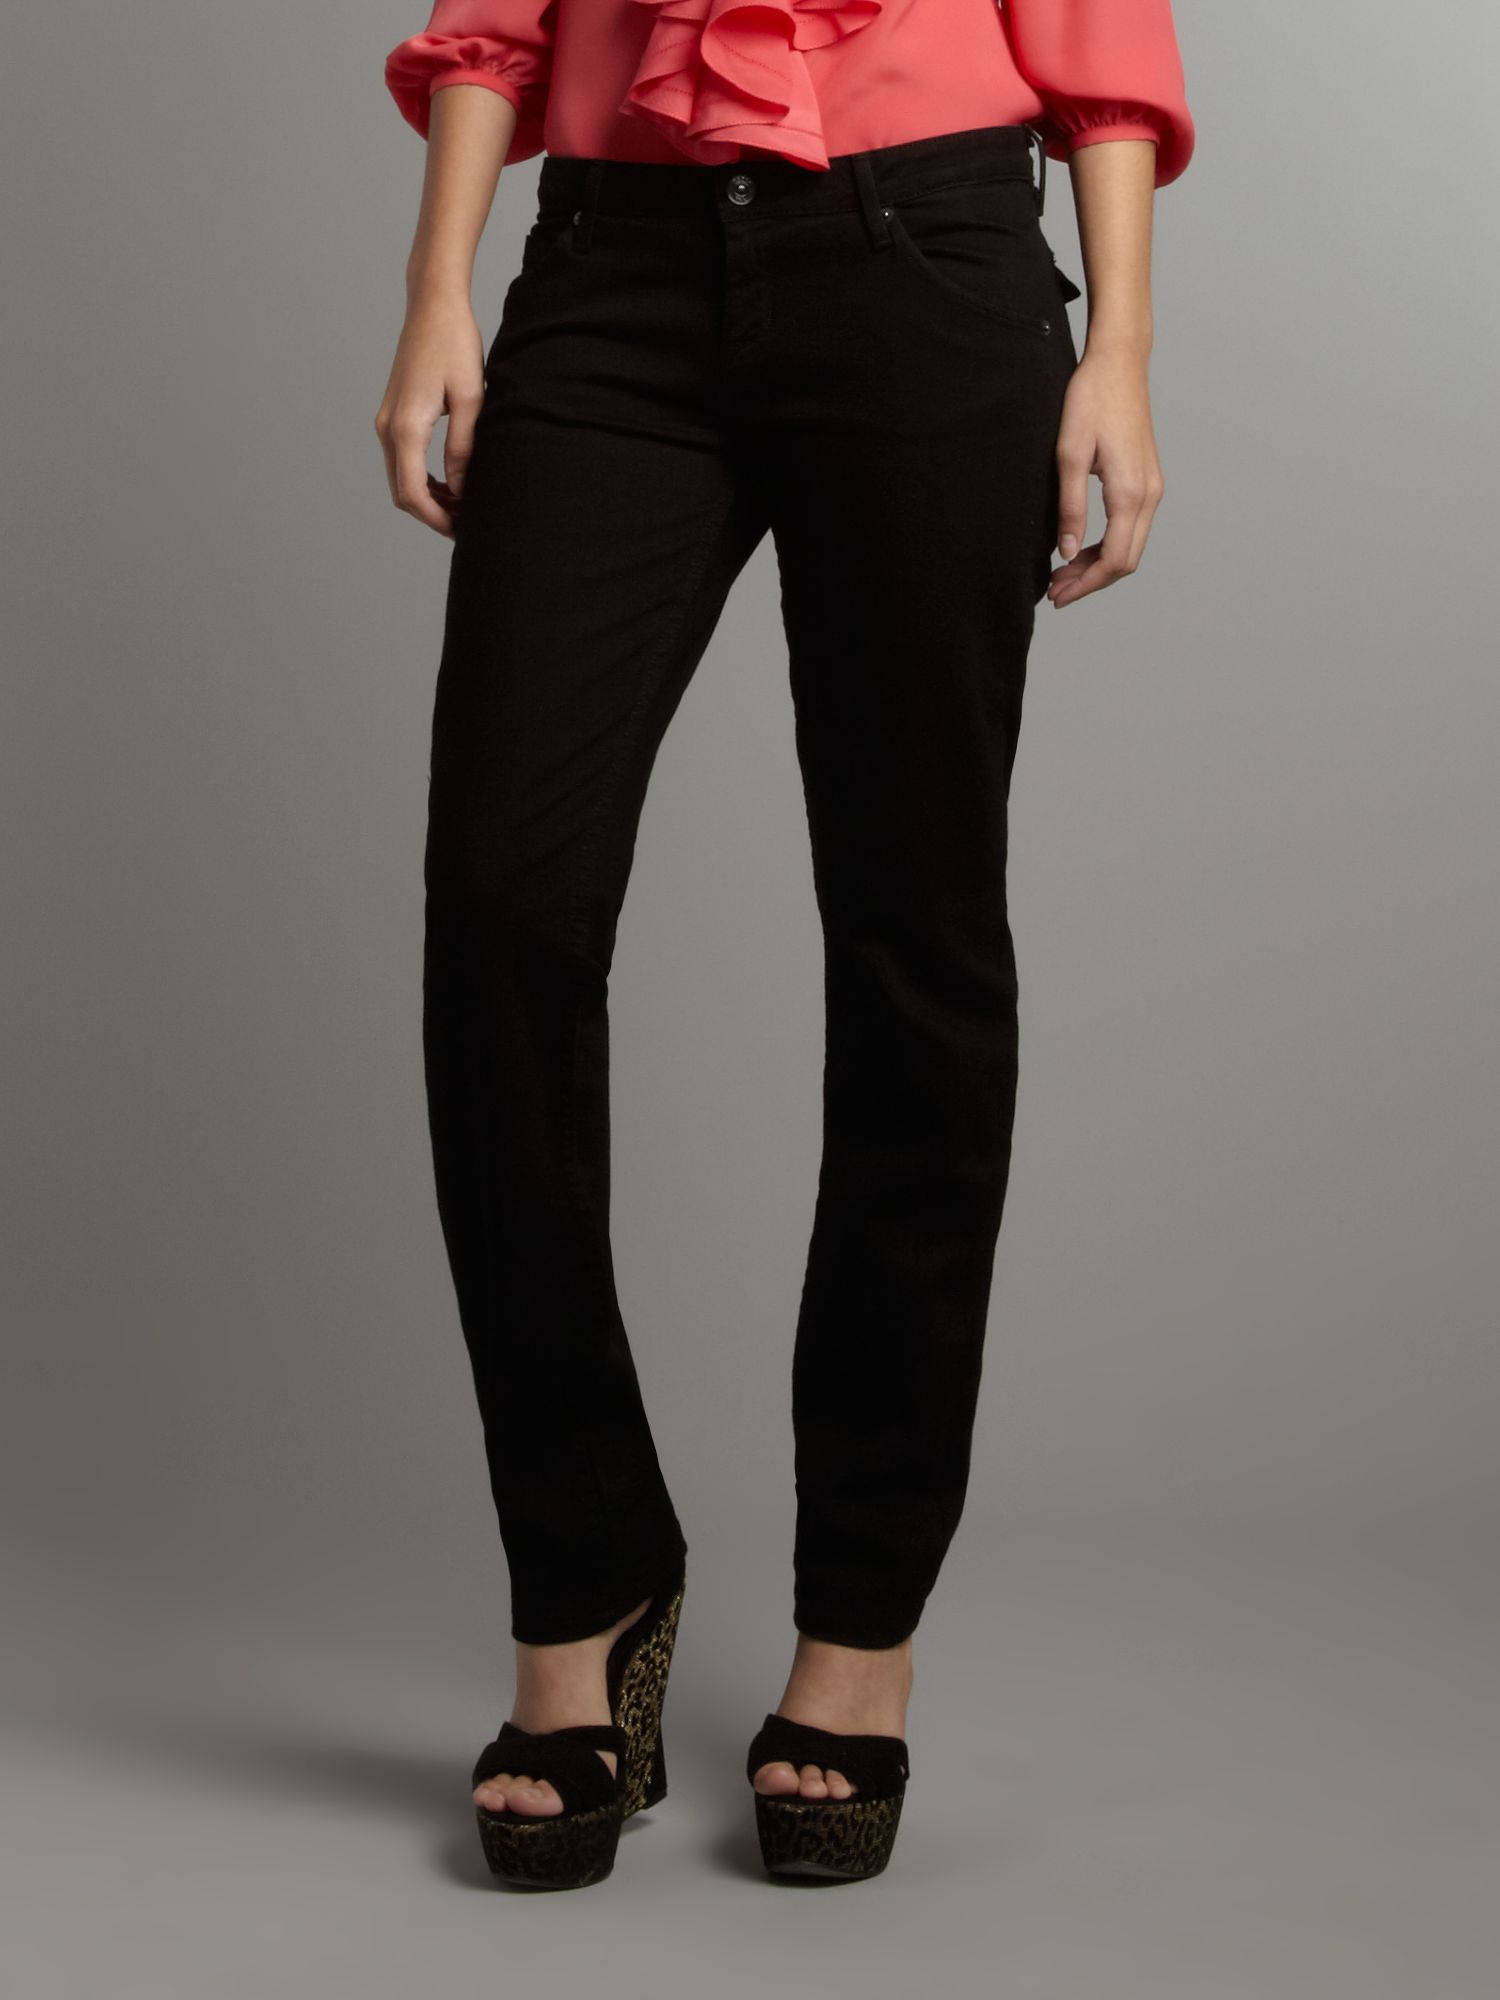 Carly mid rise straight leg jean in Black Ice